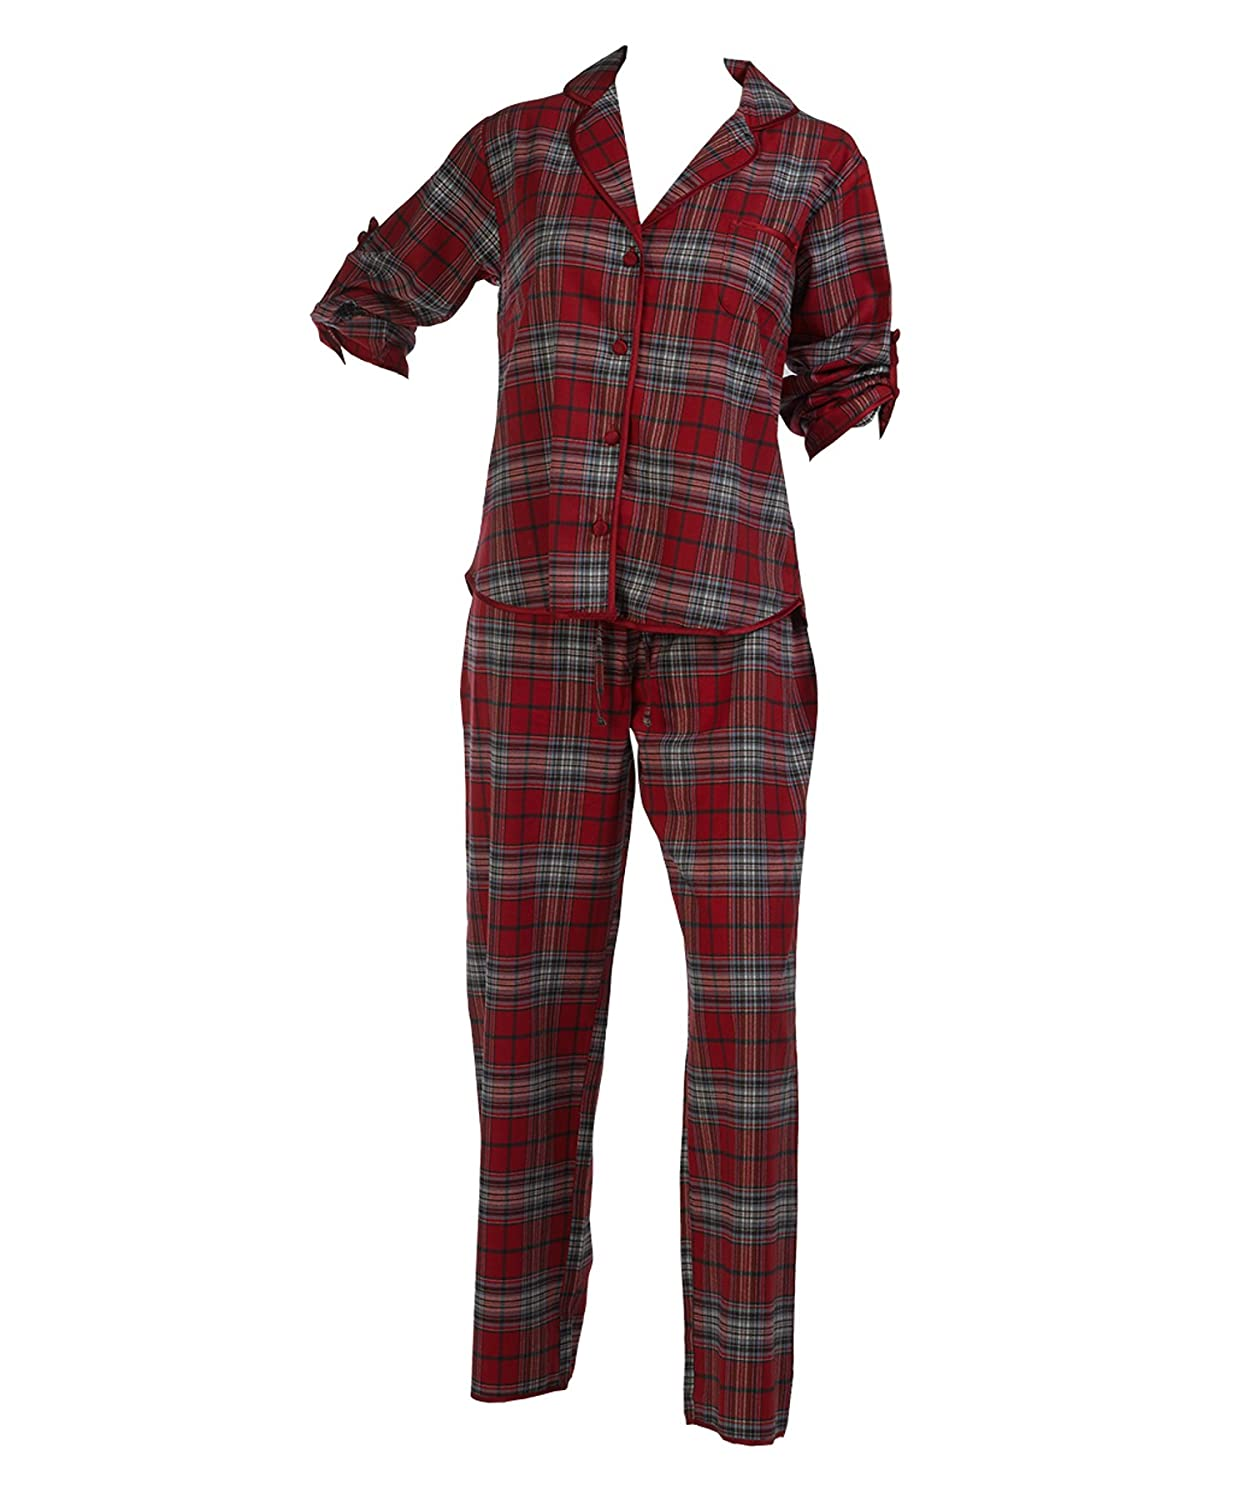 57f7b2676b Ladies Combed Cotton Tartan Pyjamas Roll Sleeve Button Up Top   Bottoms PJs  Set Red (Medium)  Amazon.co.uk  Clothing